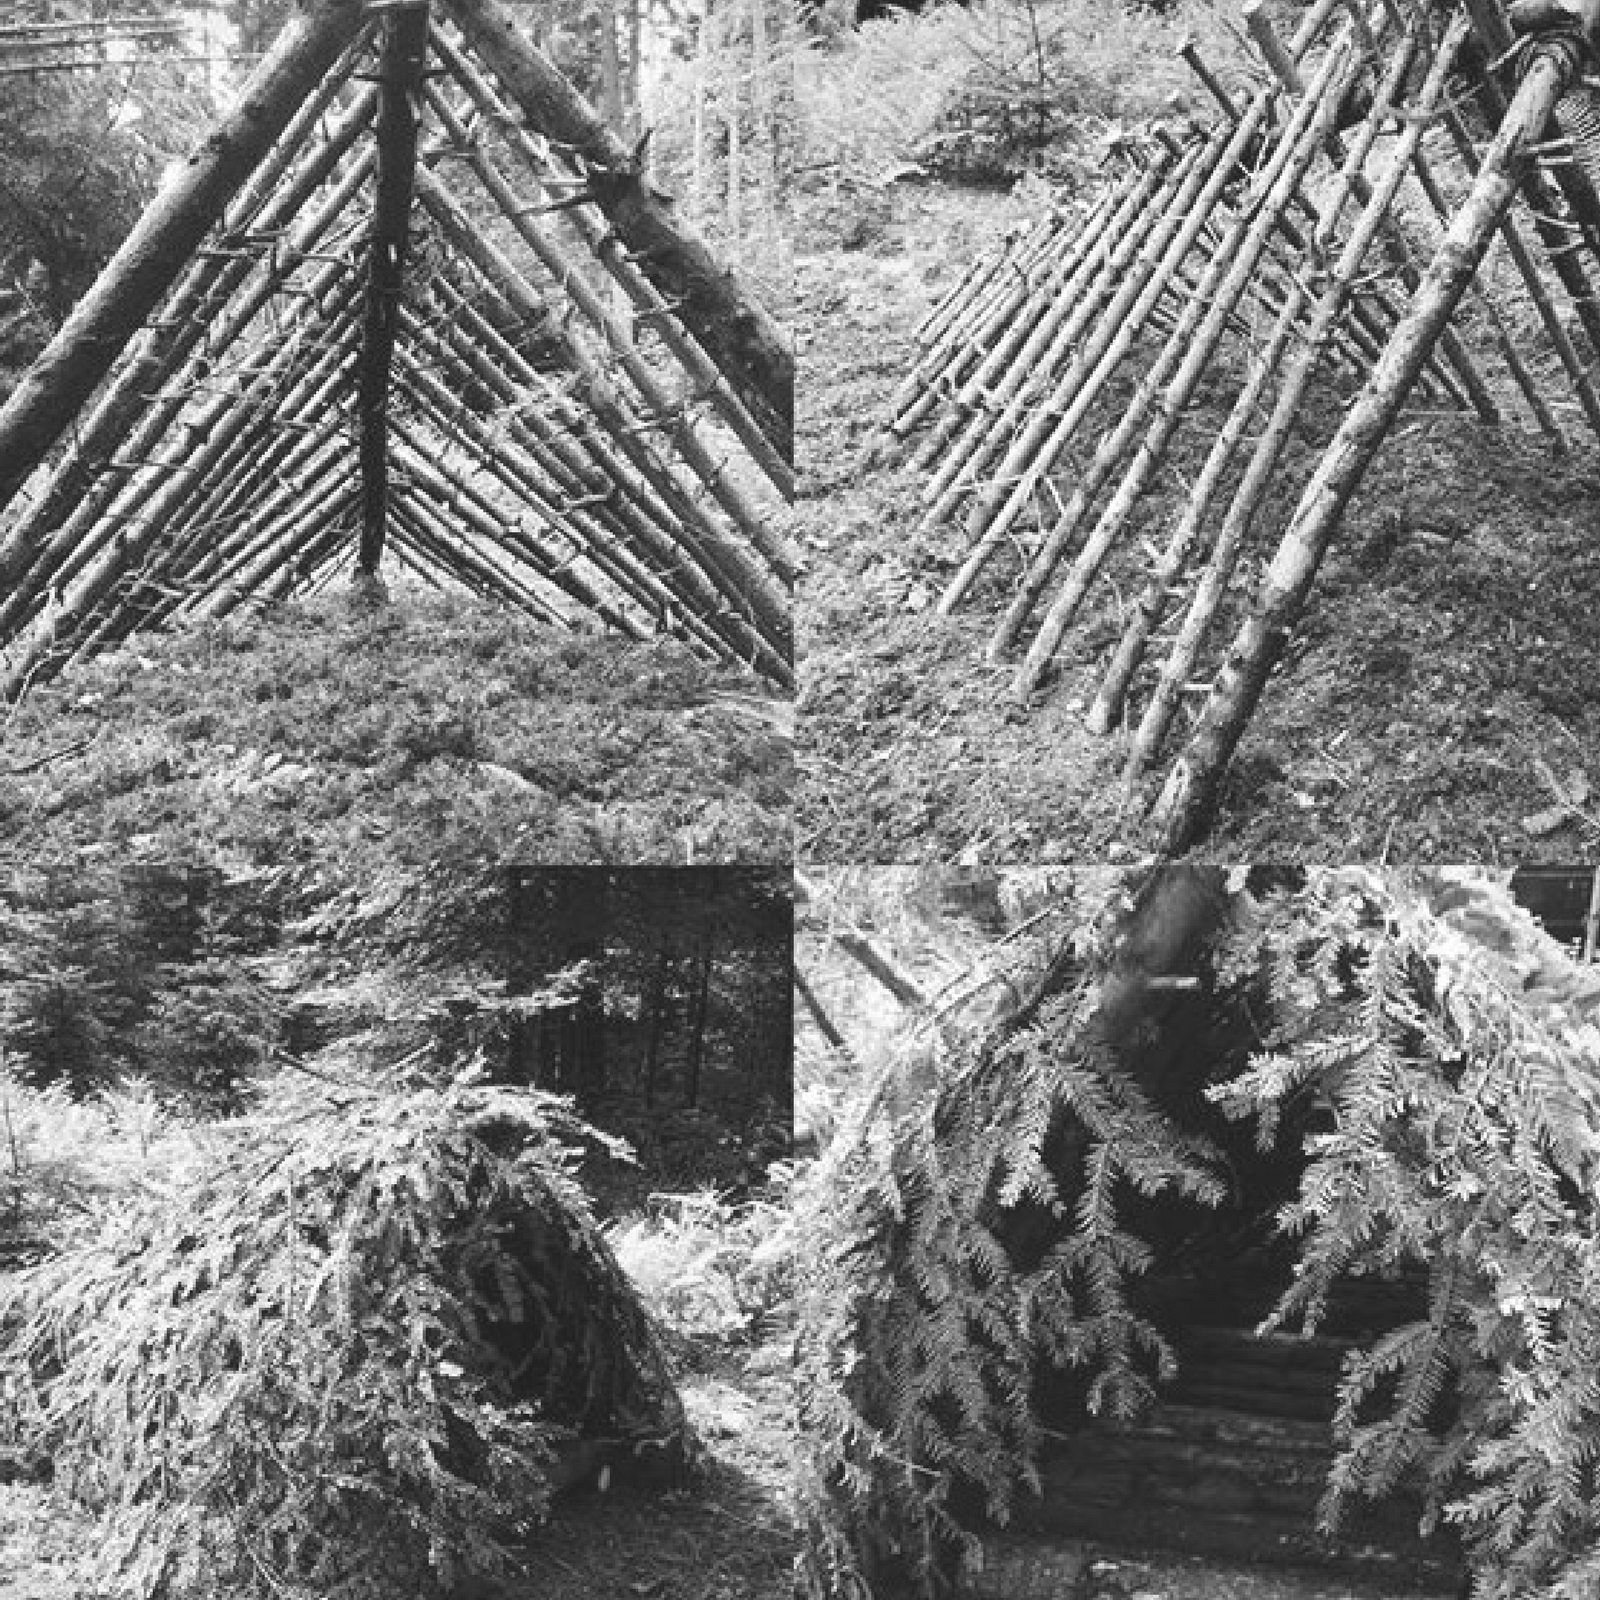 Shtf Shelter: Building A Survival Shelter In The Wild